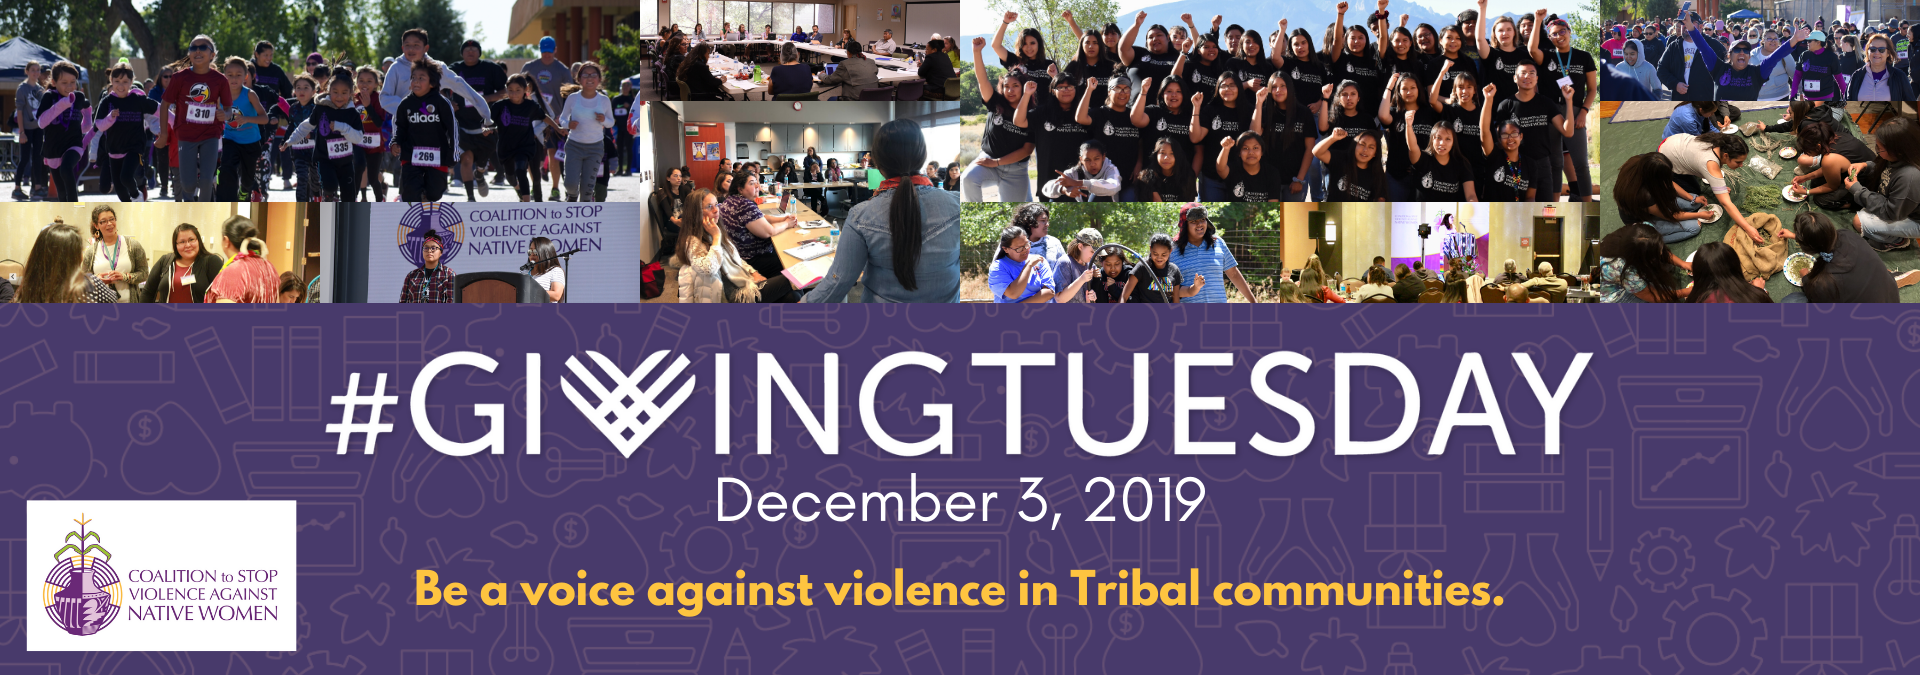 2019 Giving Tuesday Website Banners